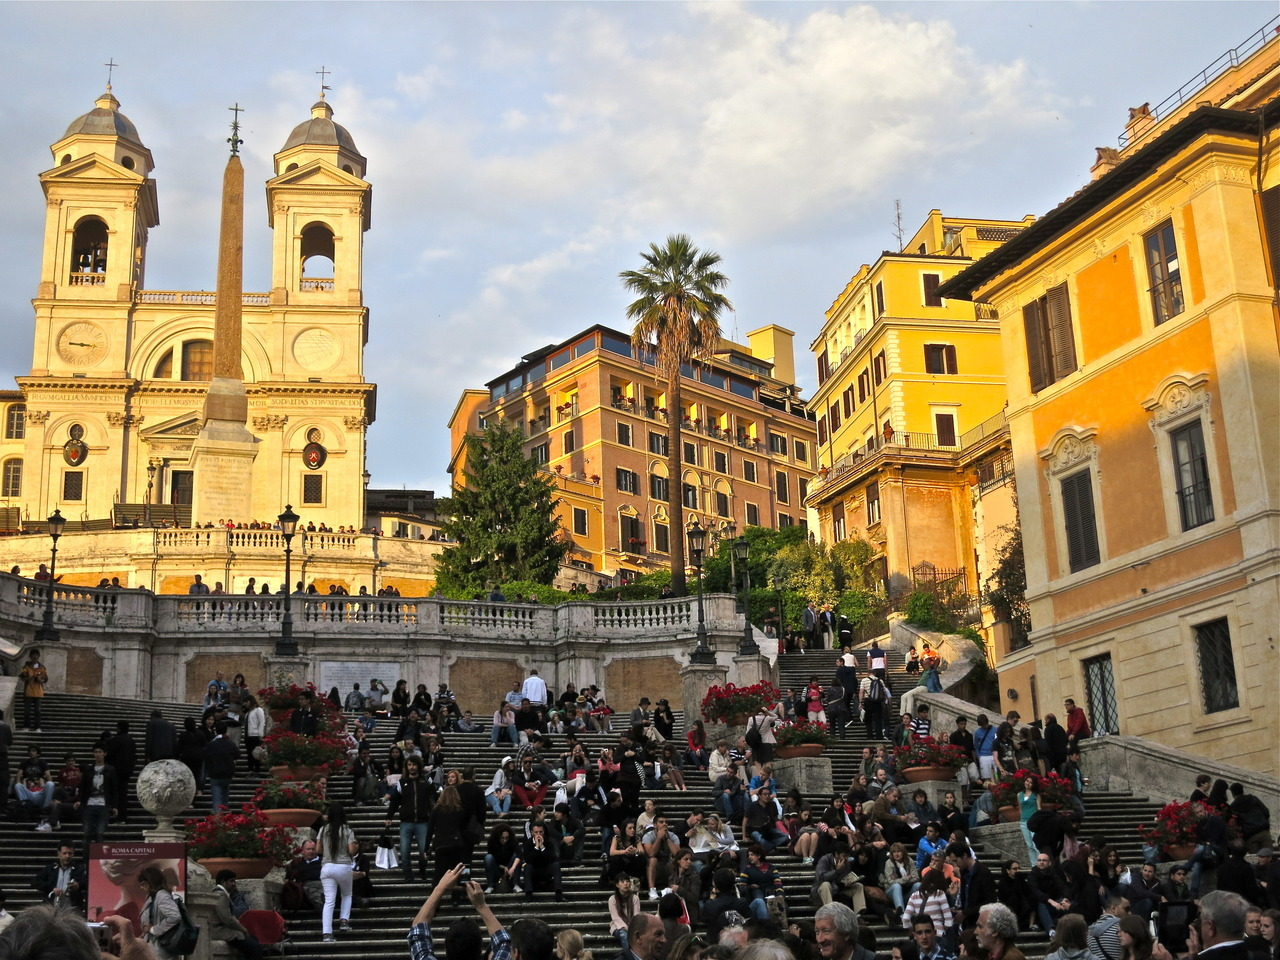 The Spanish Steps, illuminated by the setting sun.  Photo taken by me last week.